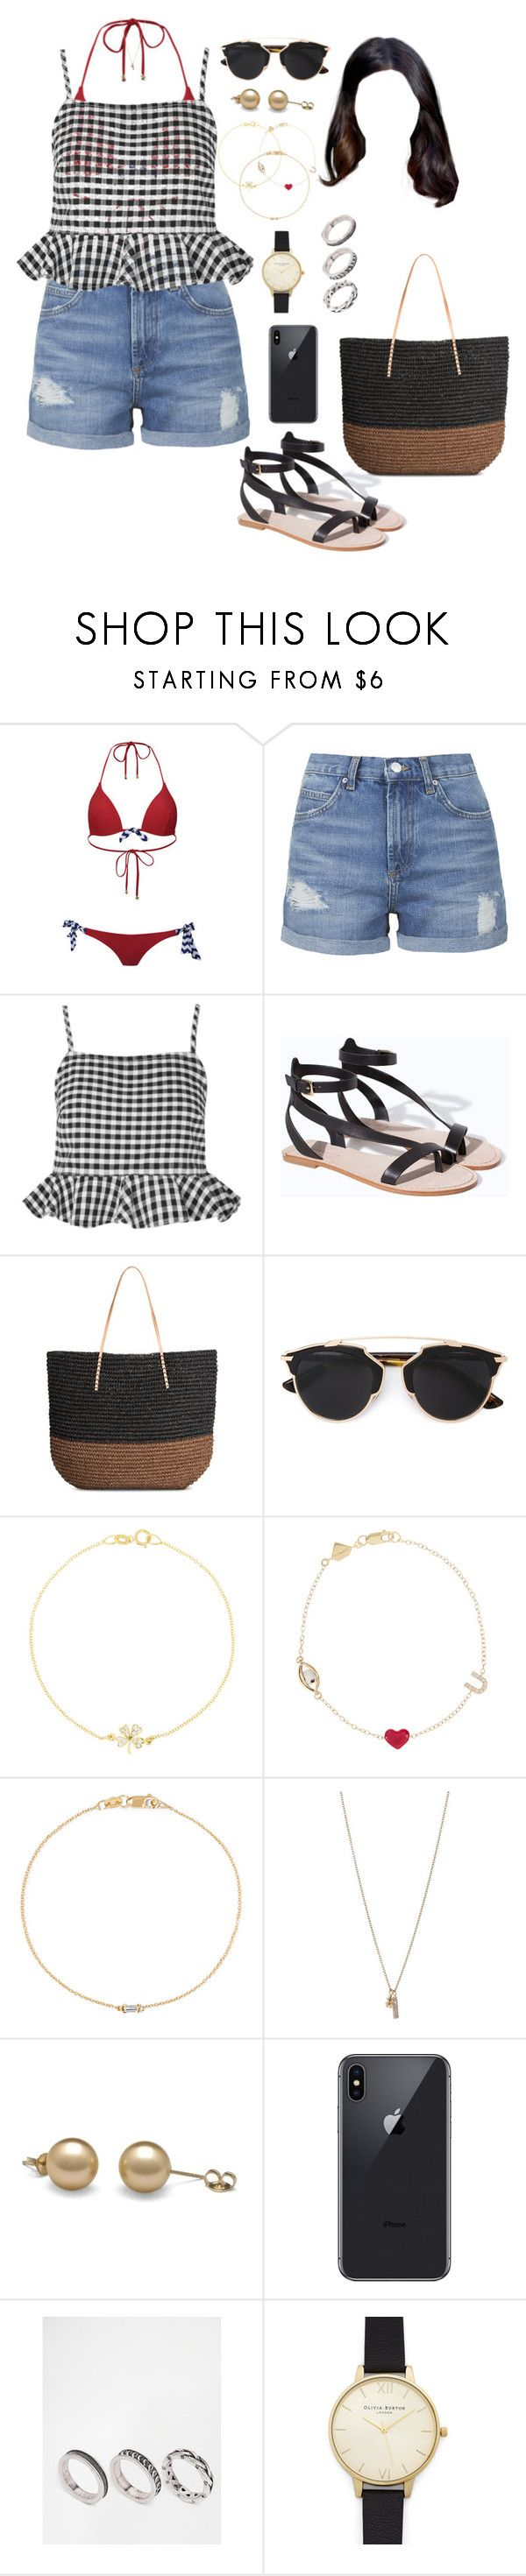 """""""SLS (day/out/beach)"""" by ittgirl ❤ liked on Polyvore featuring South Beach, Topshop, Zara, Christian Dior, Jennifer Meyer Jewelry, Alison Lou, Ileana Makri, Minor Obsessions, ASOS and Olivia Burton"""